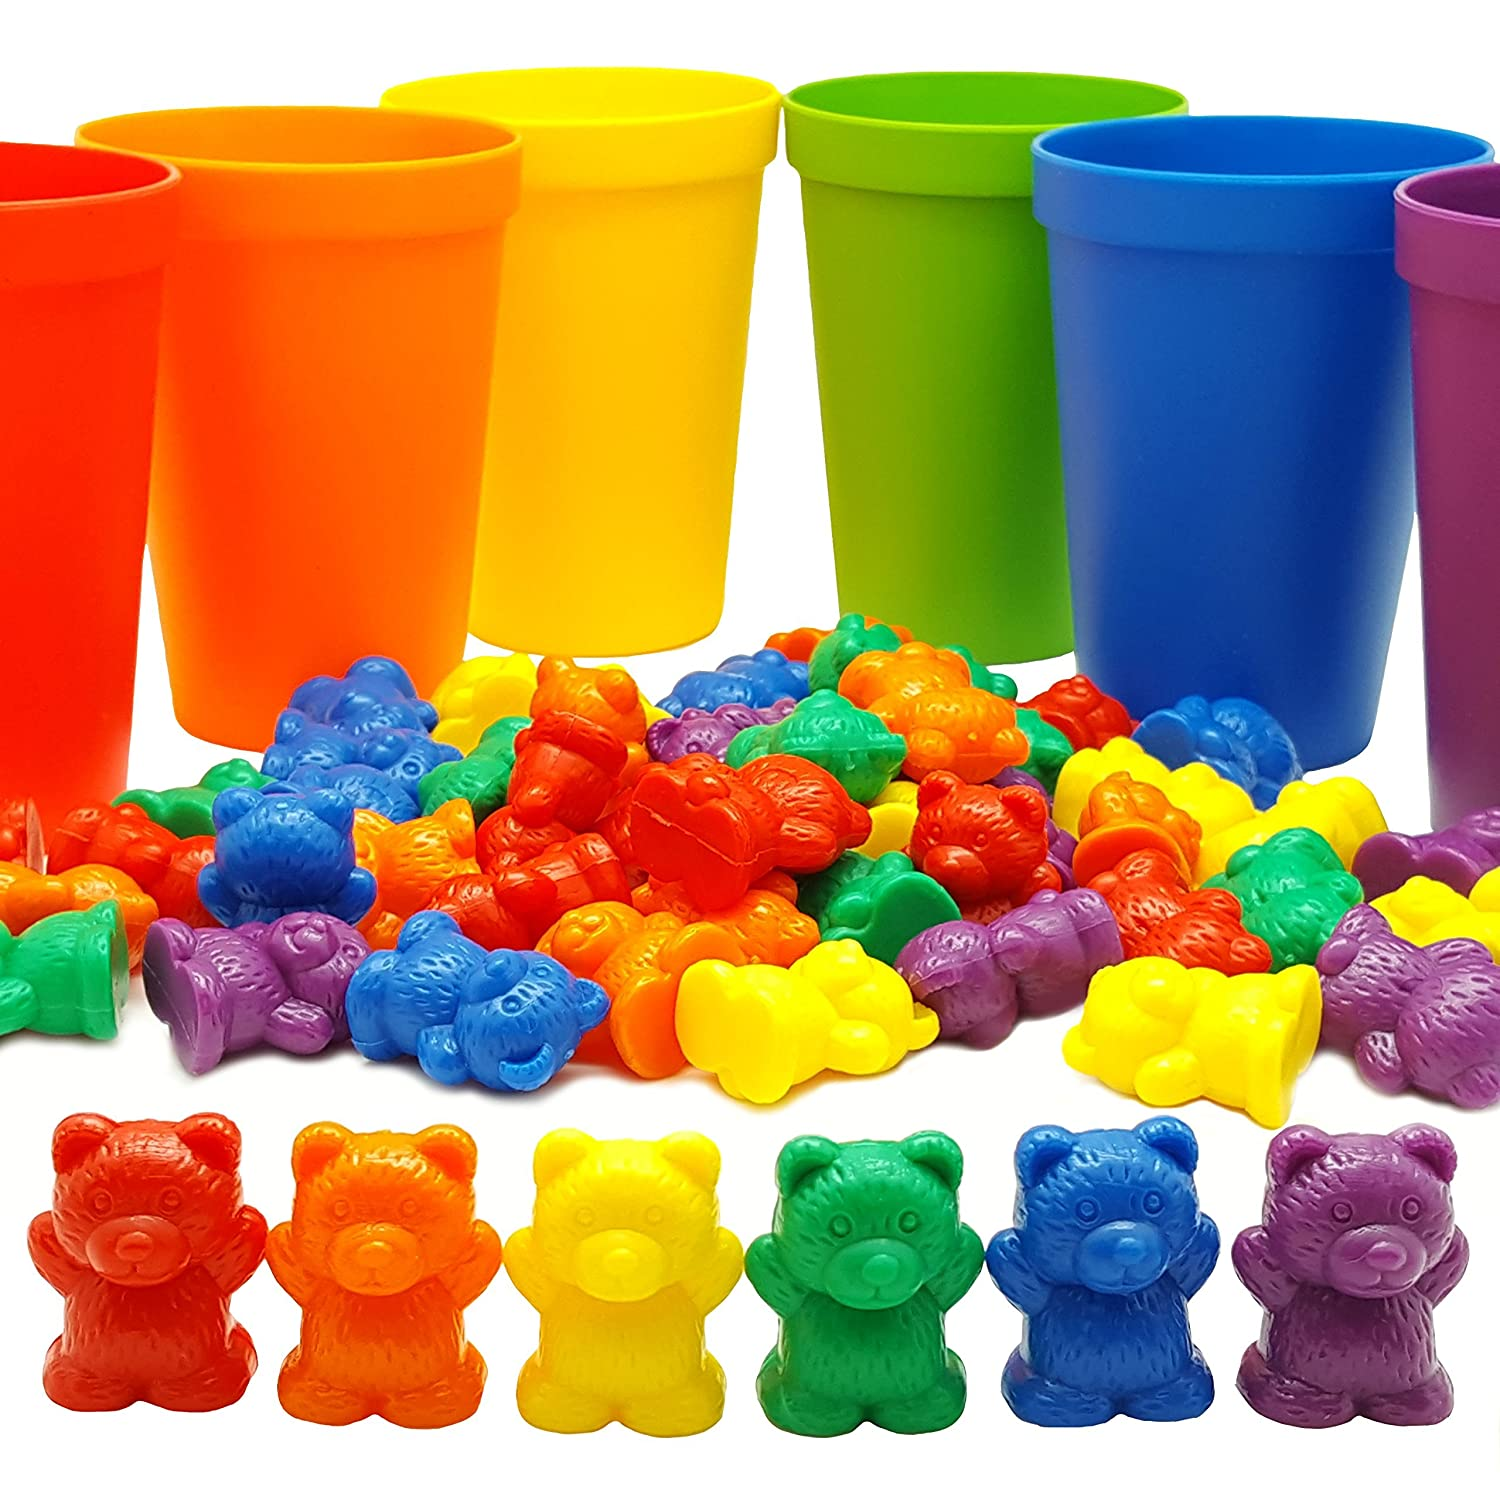 Buy Online Jumbo Sorting and Counting Bears with Stacking Cups ...